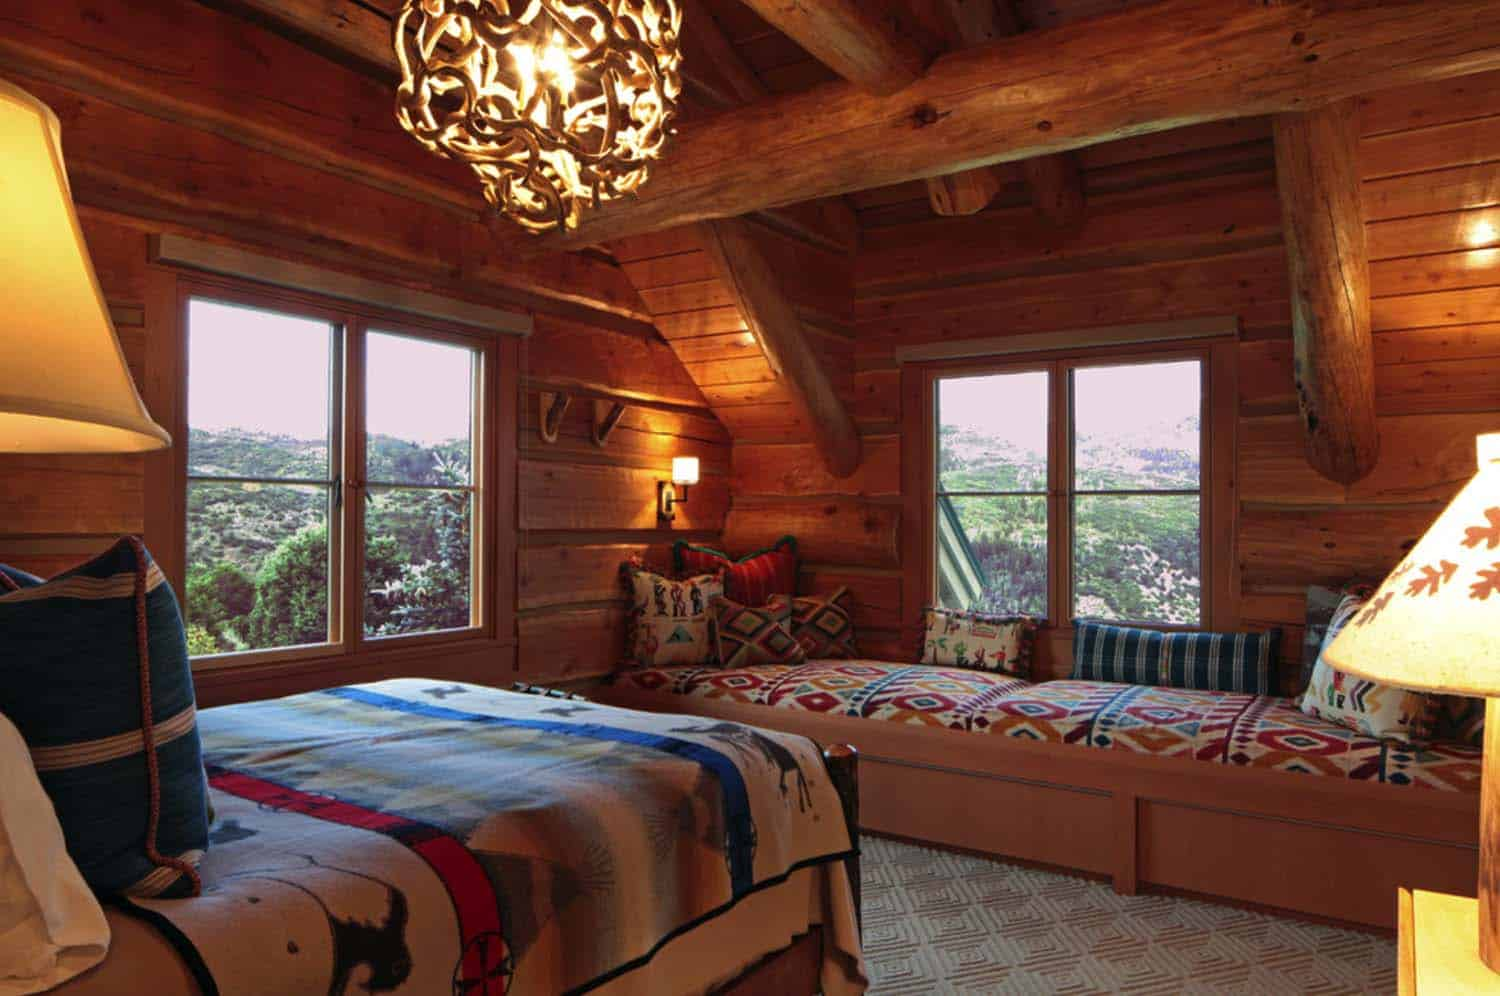 log-cabin-style-bedrooms-02-1-kindesign